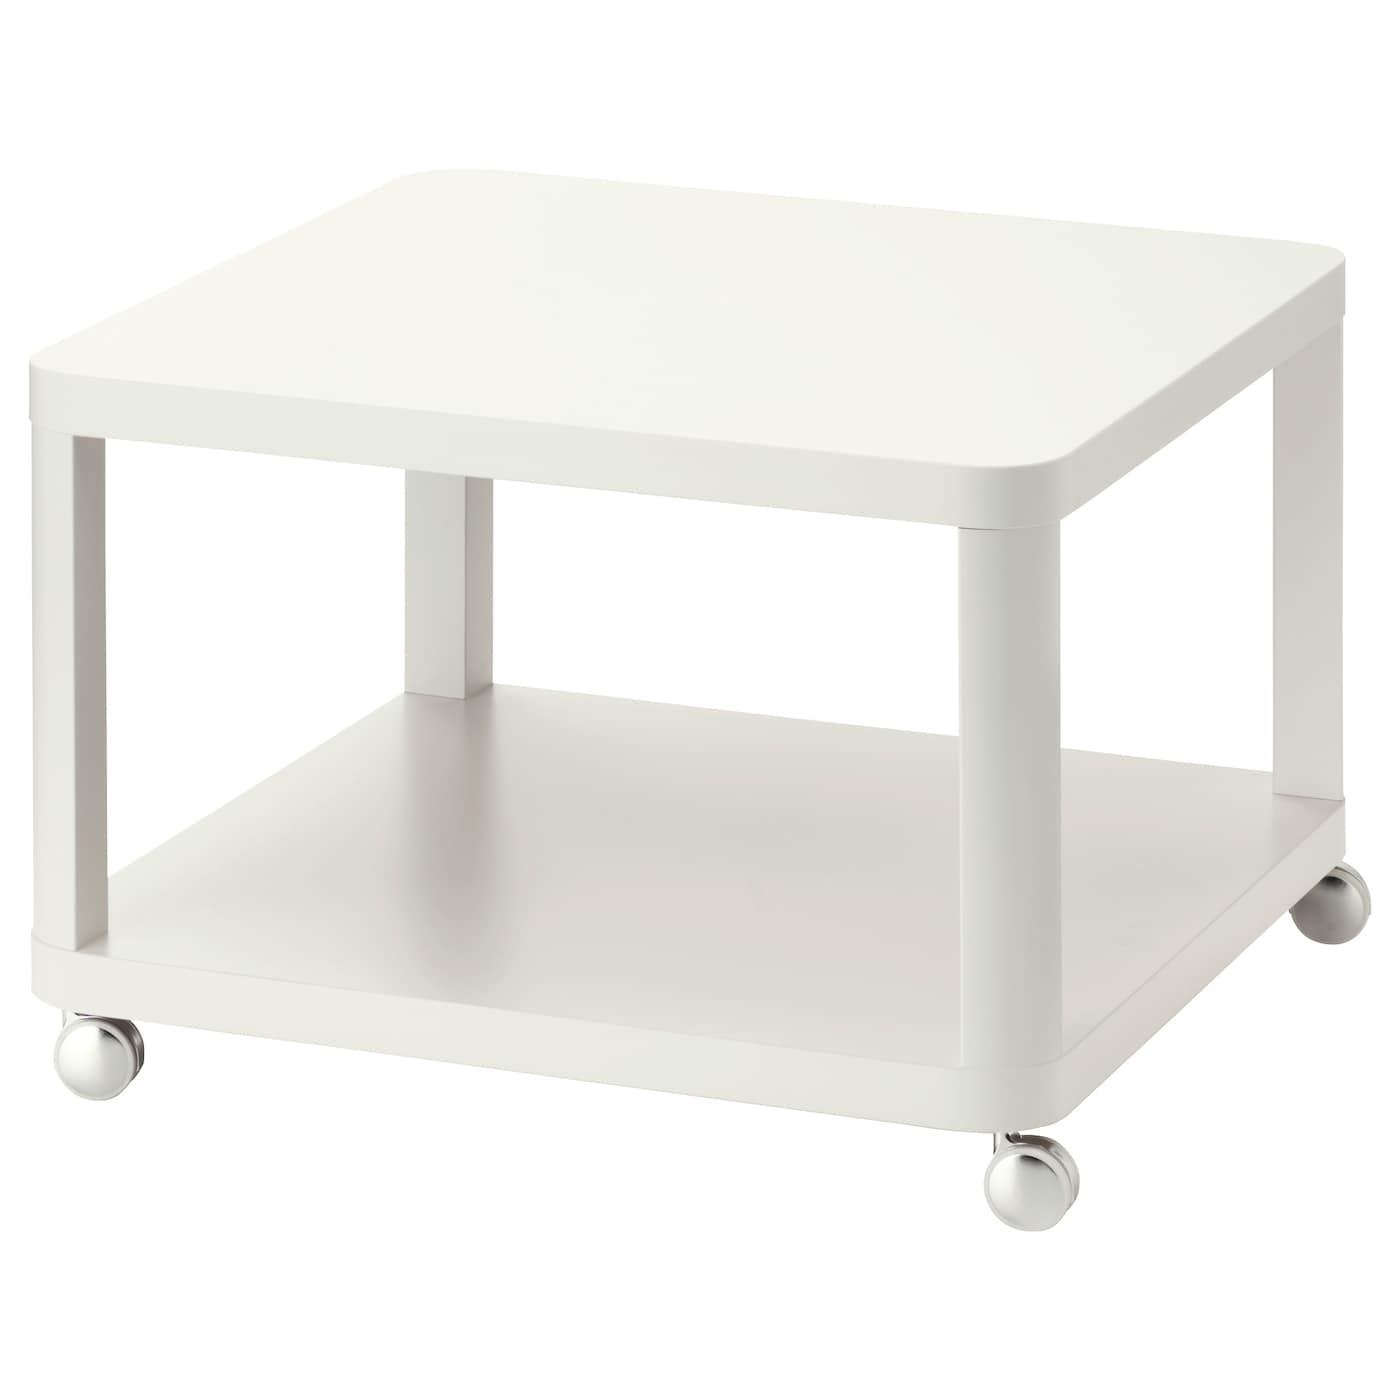 IKEA TINGBY side table on castors The castors make it easy to move the table  if